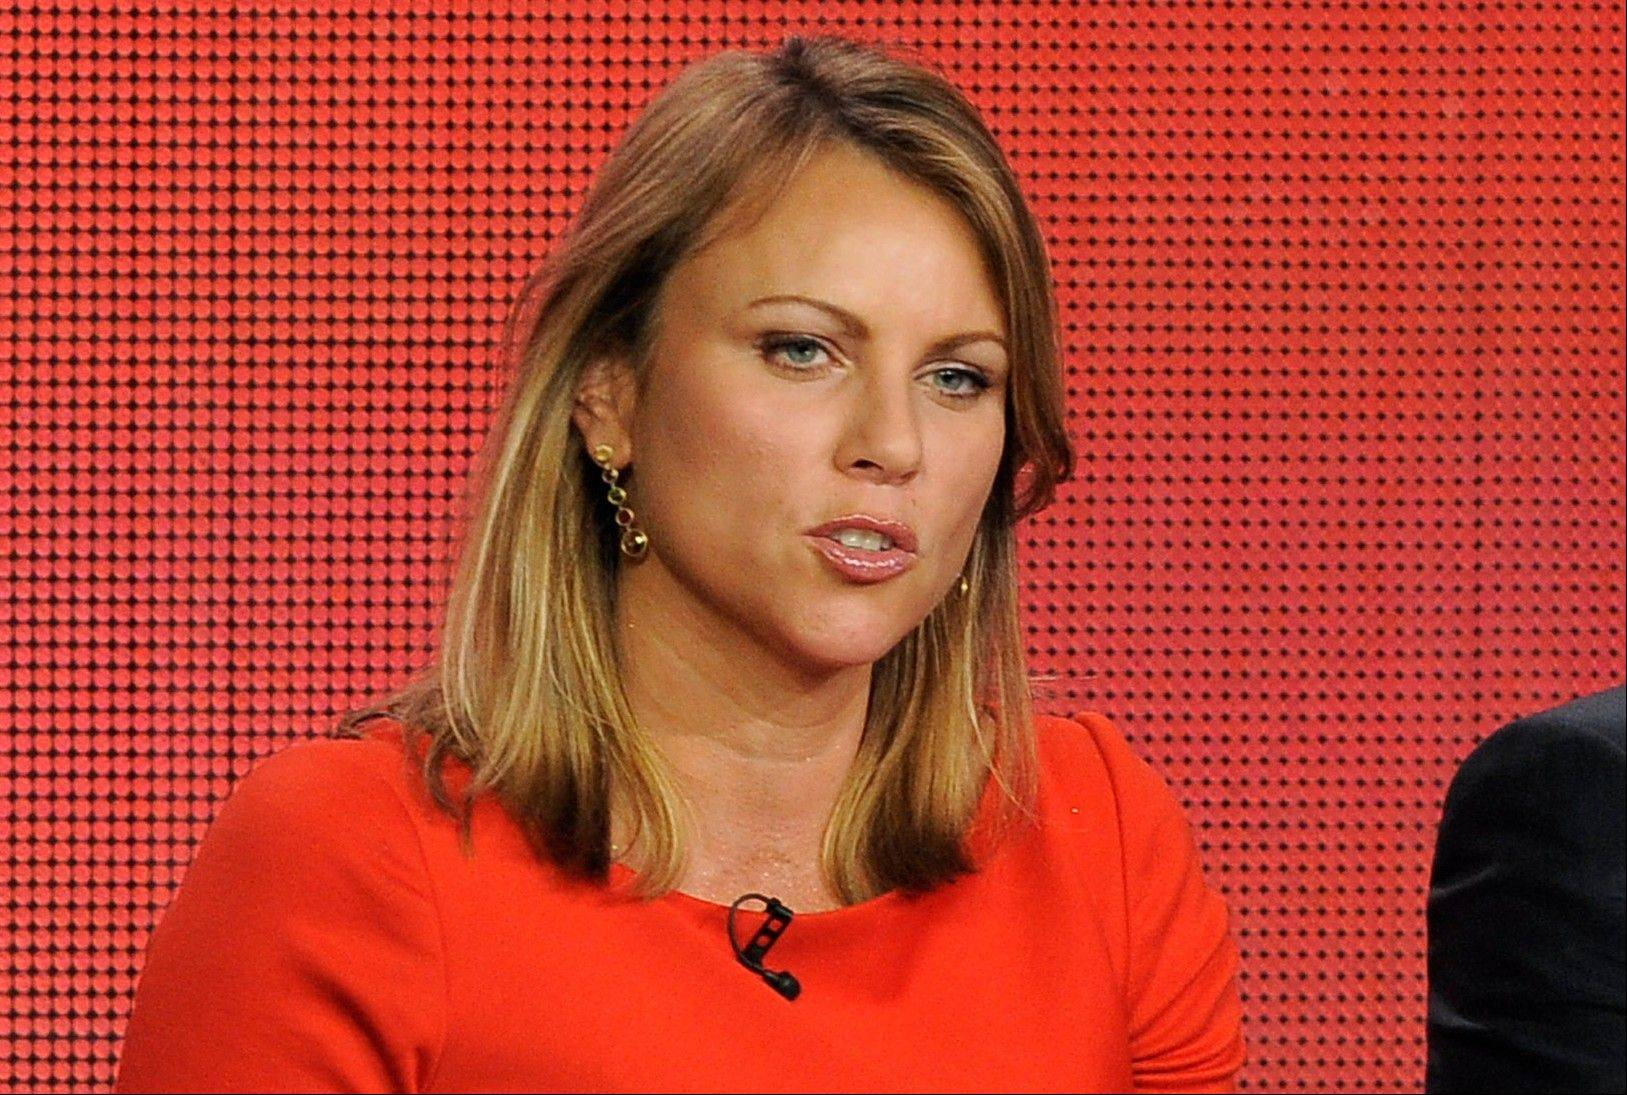 �60 Minutes� reporter Lara Logan on Friday said that CBS apologizes to viewers and will issue a correction to its Oct. 27 story Sunday on �60 Minutes.�